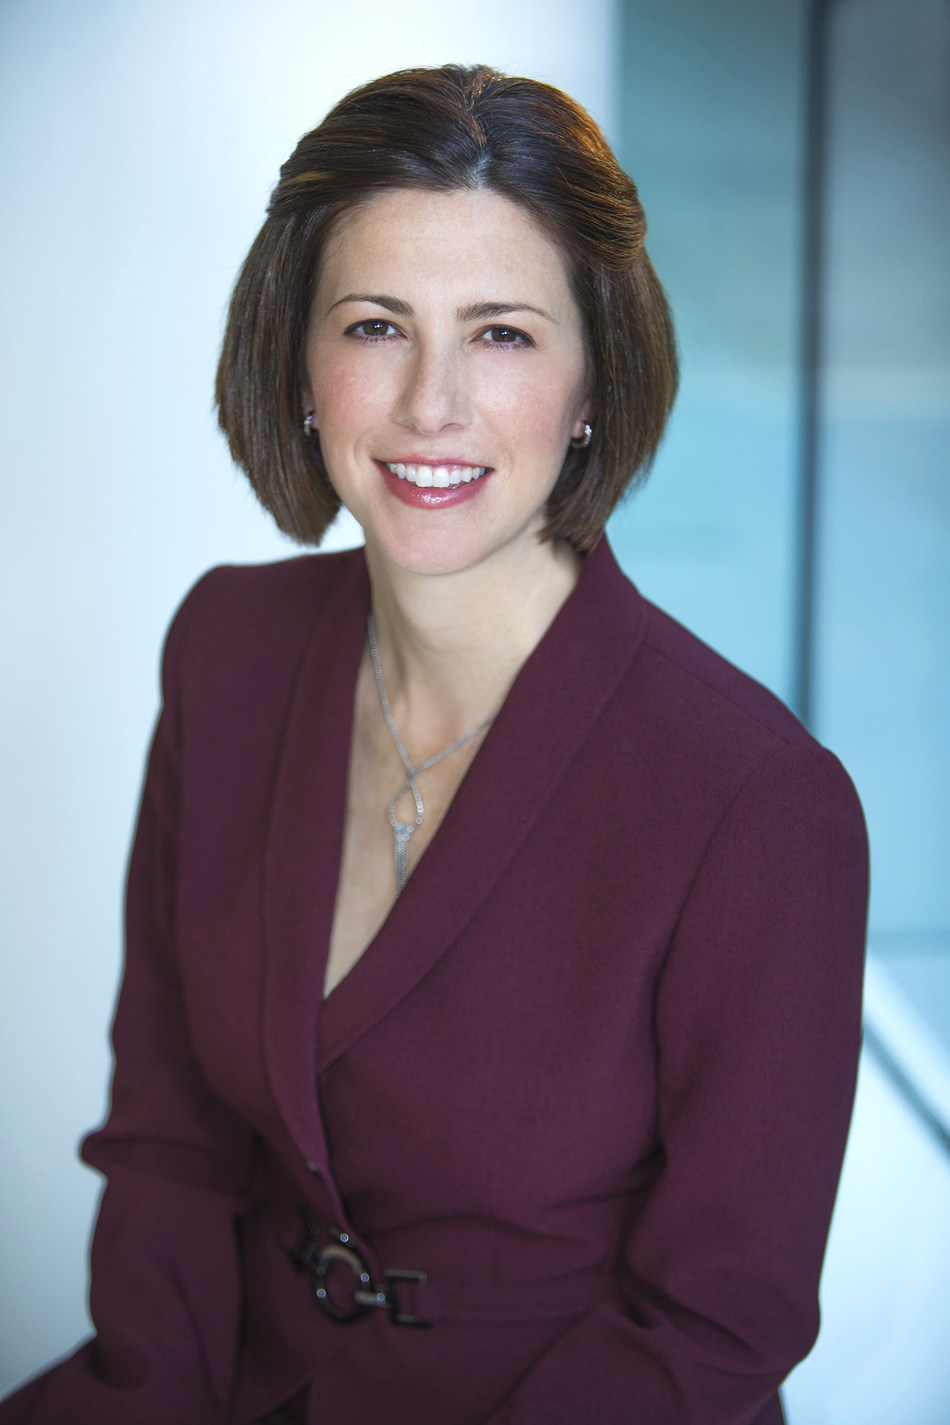 Purchasing Power COO Elizabeth Halkos offers her annual voluntary benefits industry predictions for 2019. Employers should consider actively helping their workers address the impact of debt, care-giving, savings needs and financial wellness.